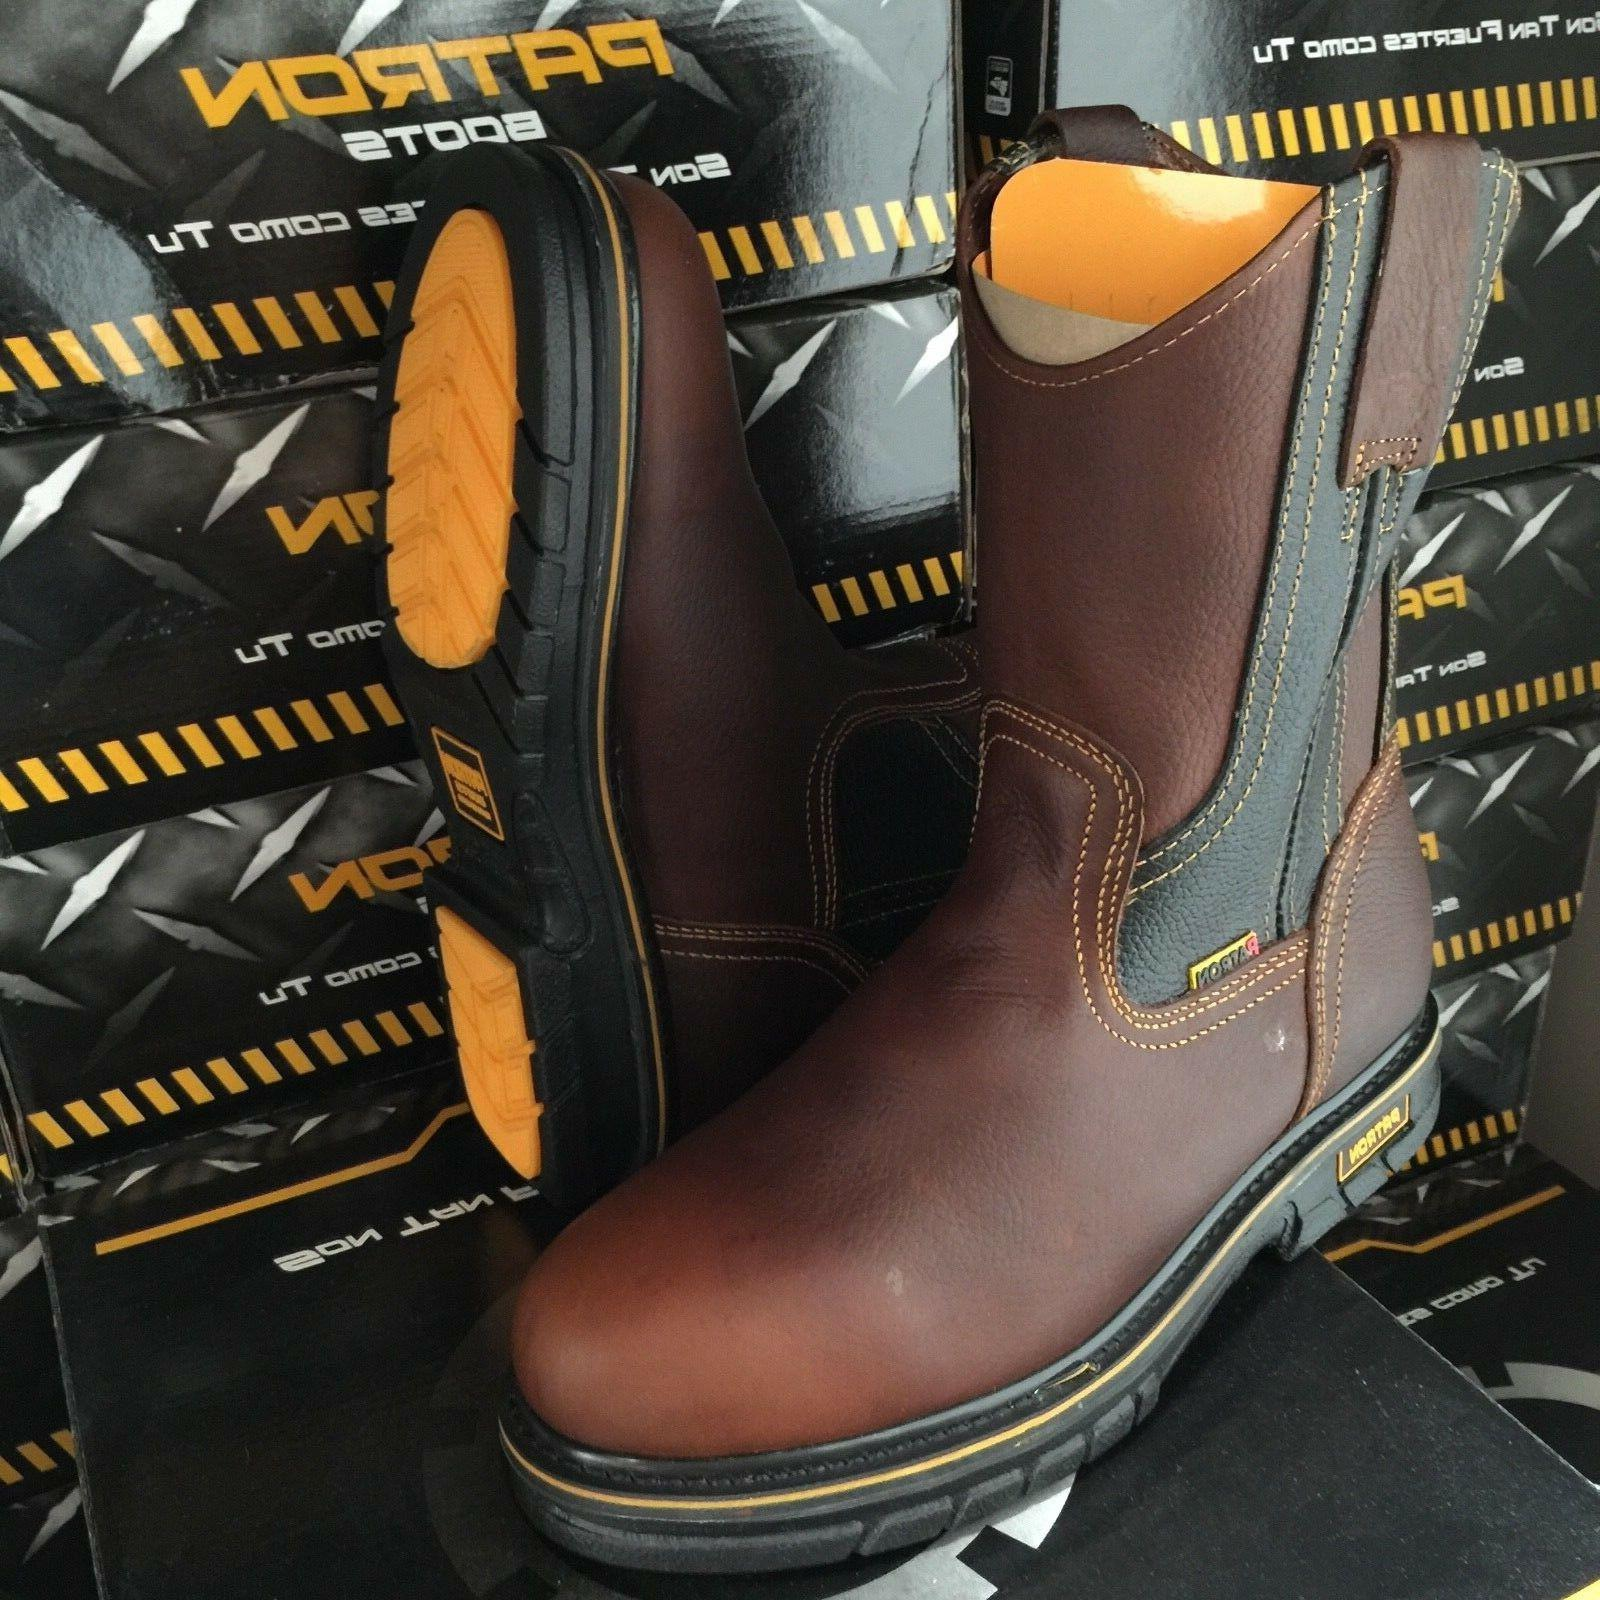 MEN'S BOOTS LEATHER OIL RESISTANT PULL BOOTS